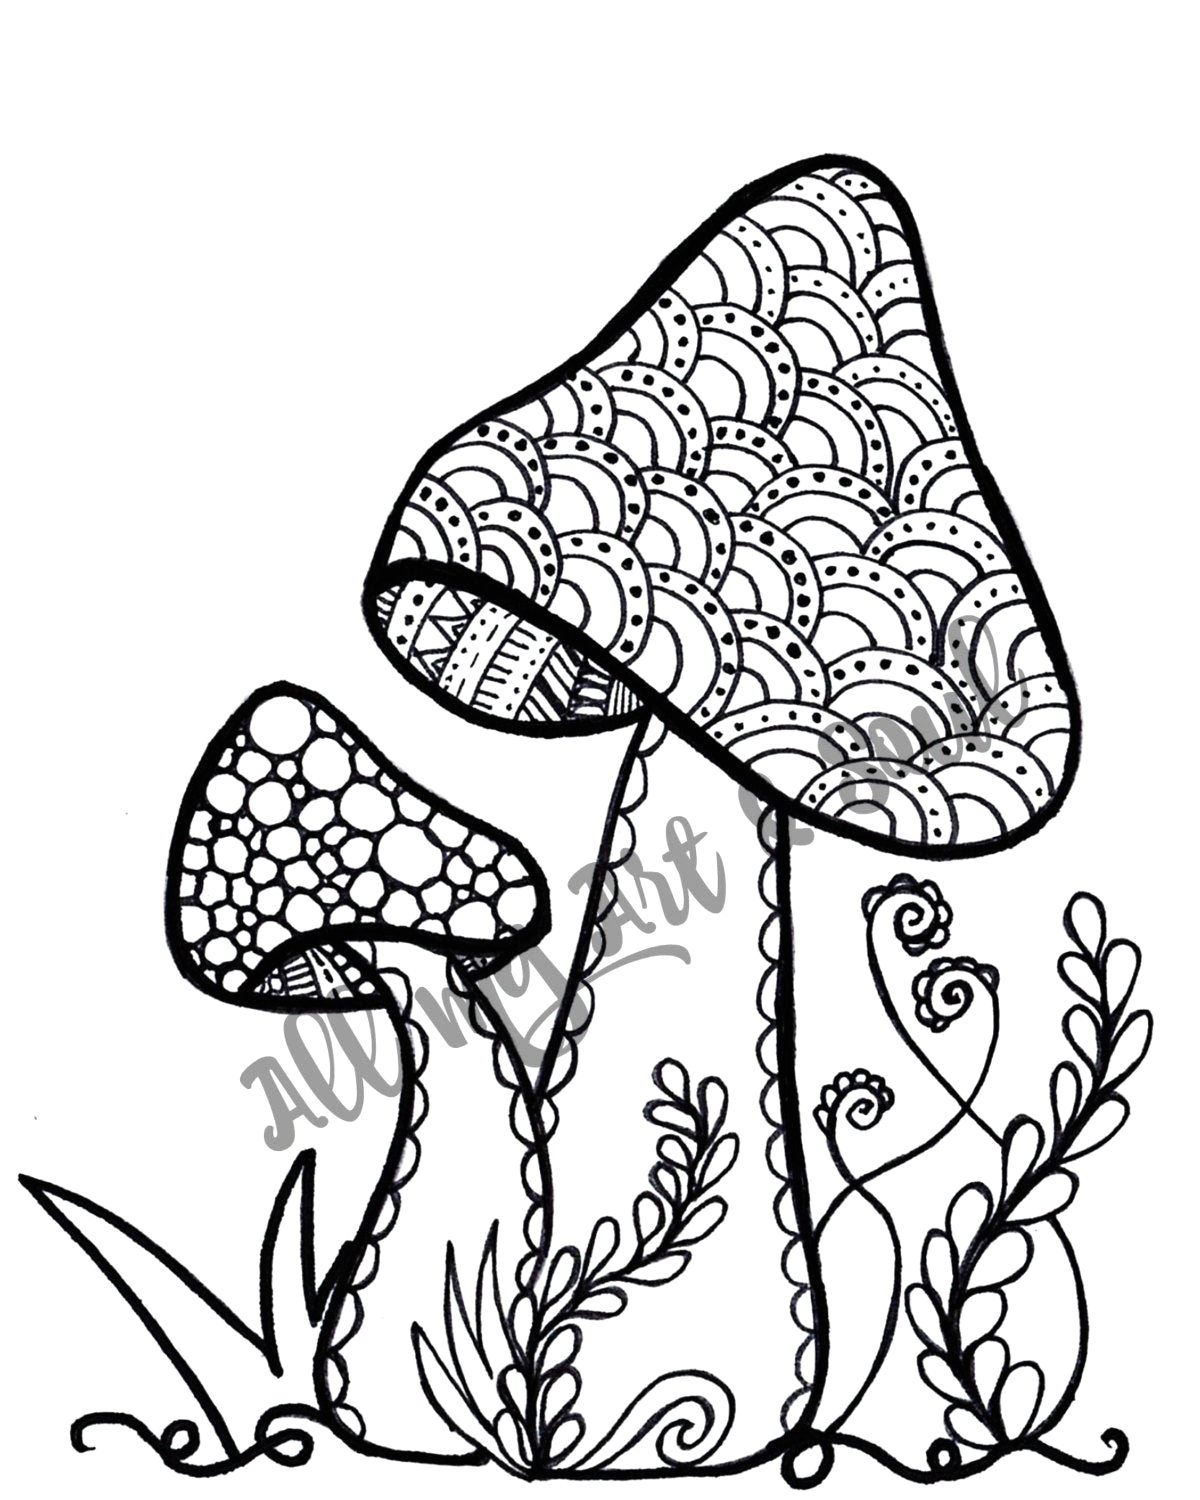 adult coloring page mushroom instant